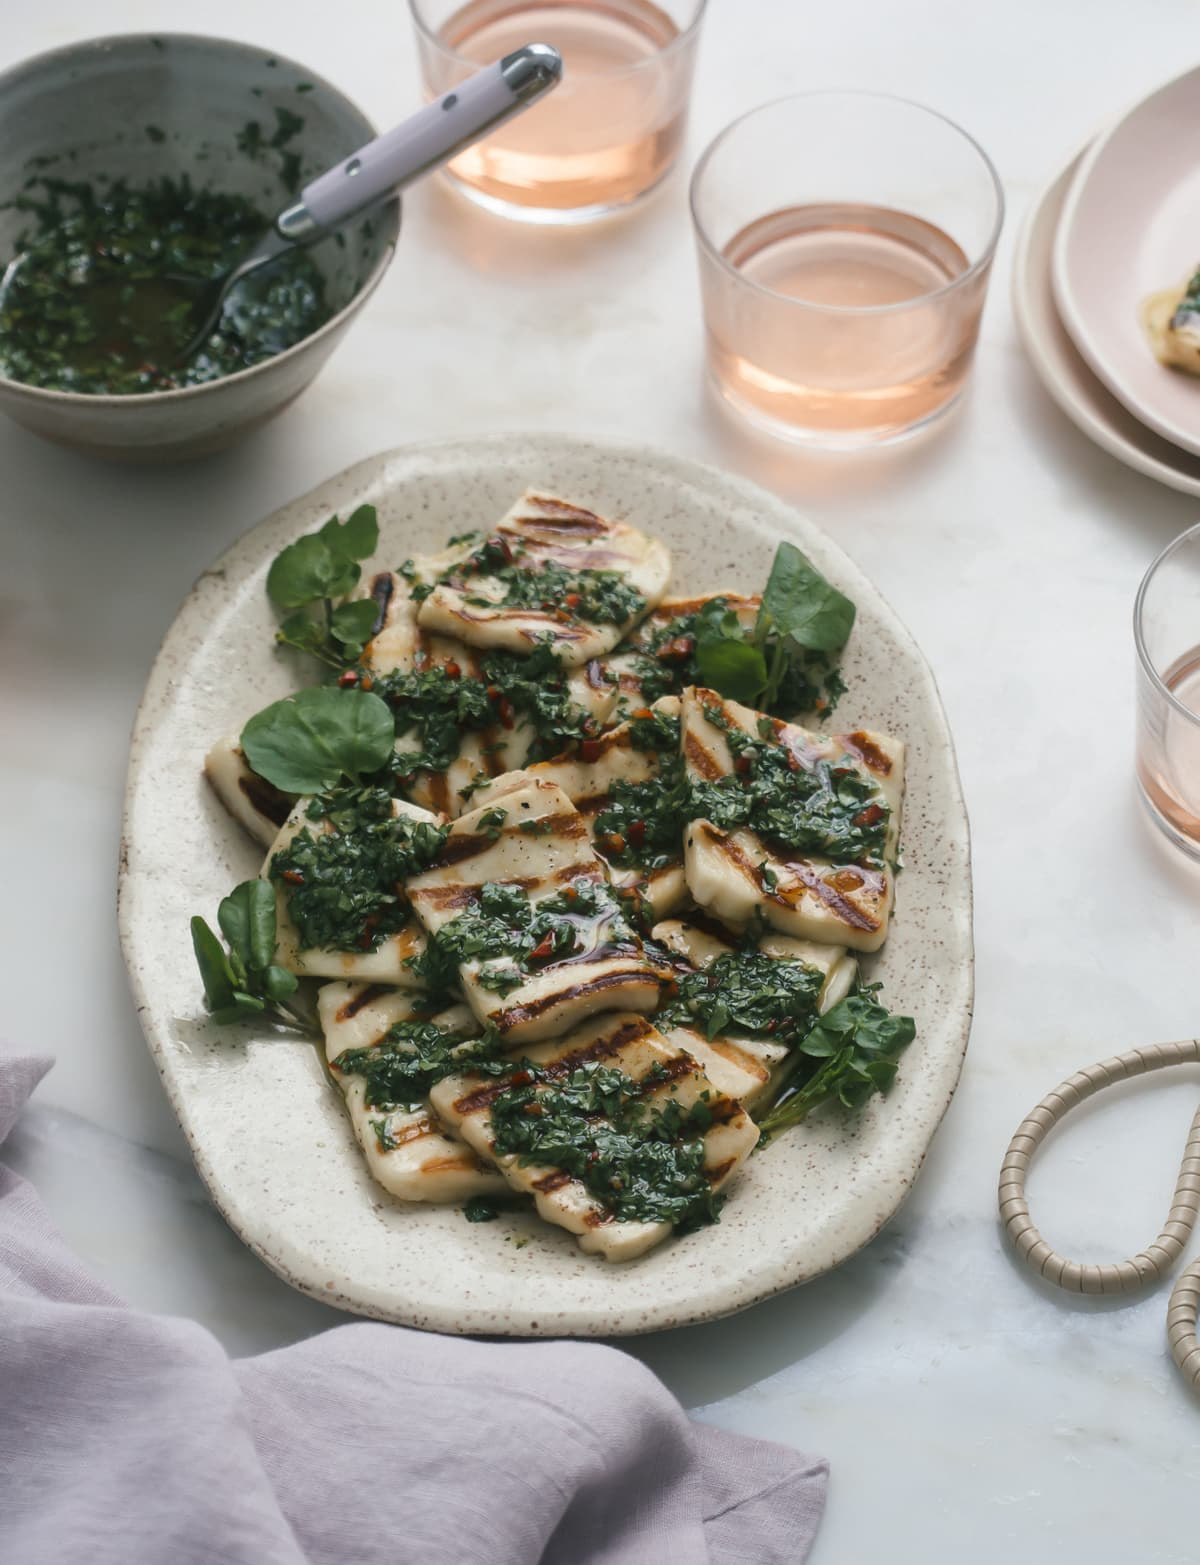 Grilled Halloumi with Watercress Chimichurri